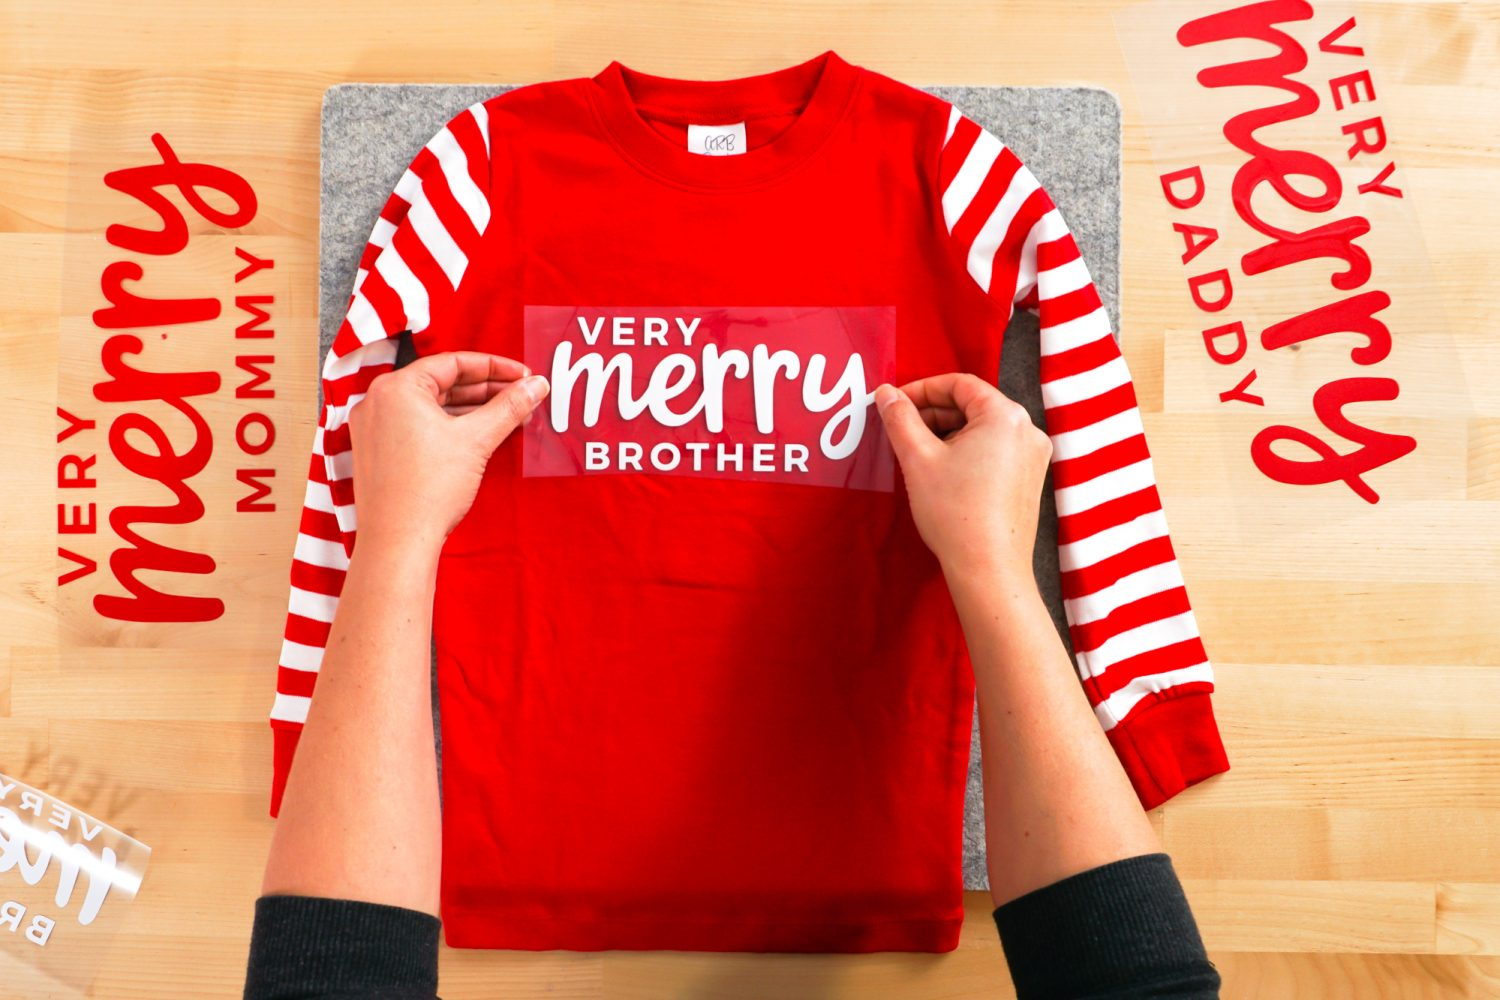 hands placing Very Merry Brother decal on shirt